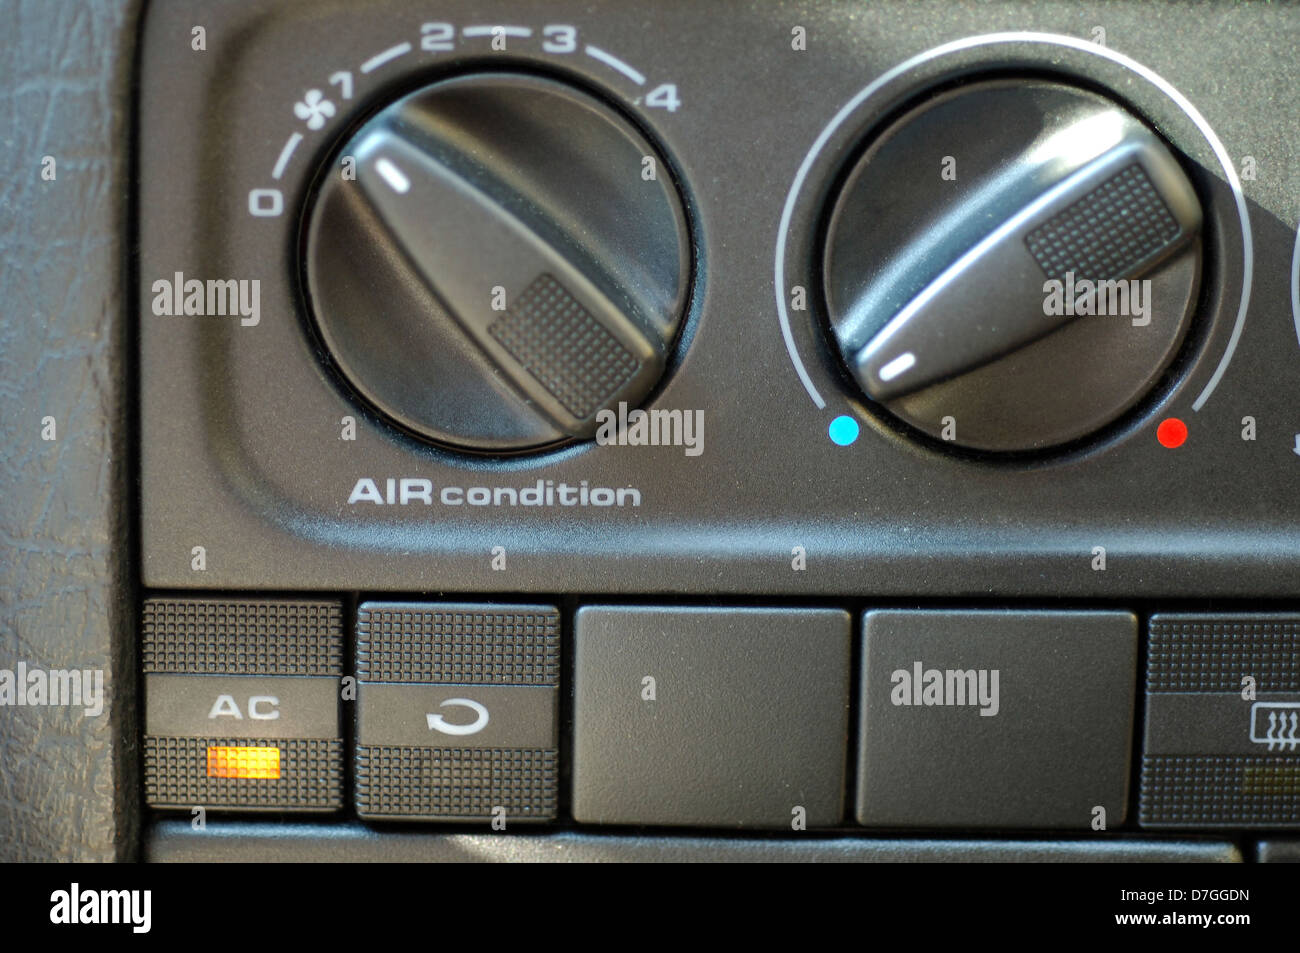 Car, instruments, announcement, air-conditioning switched on - Stock Image